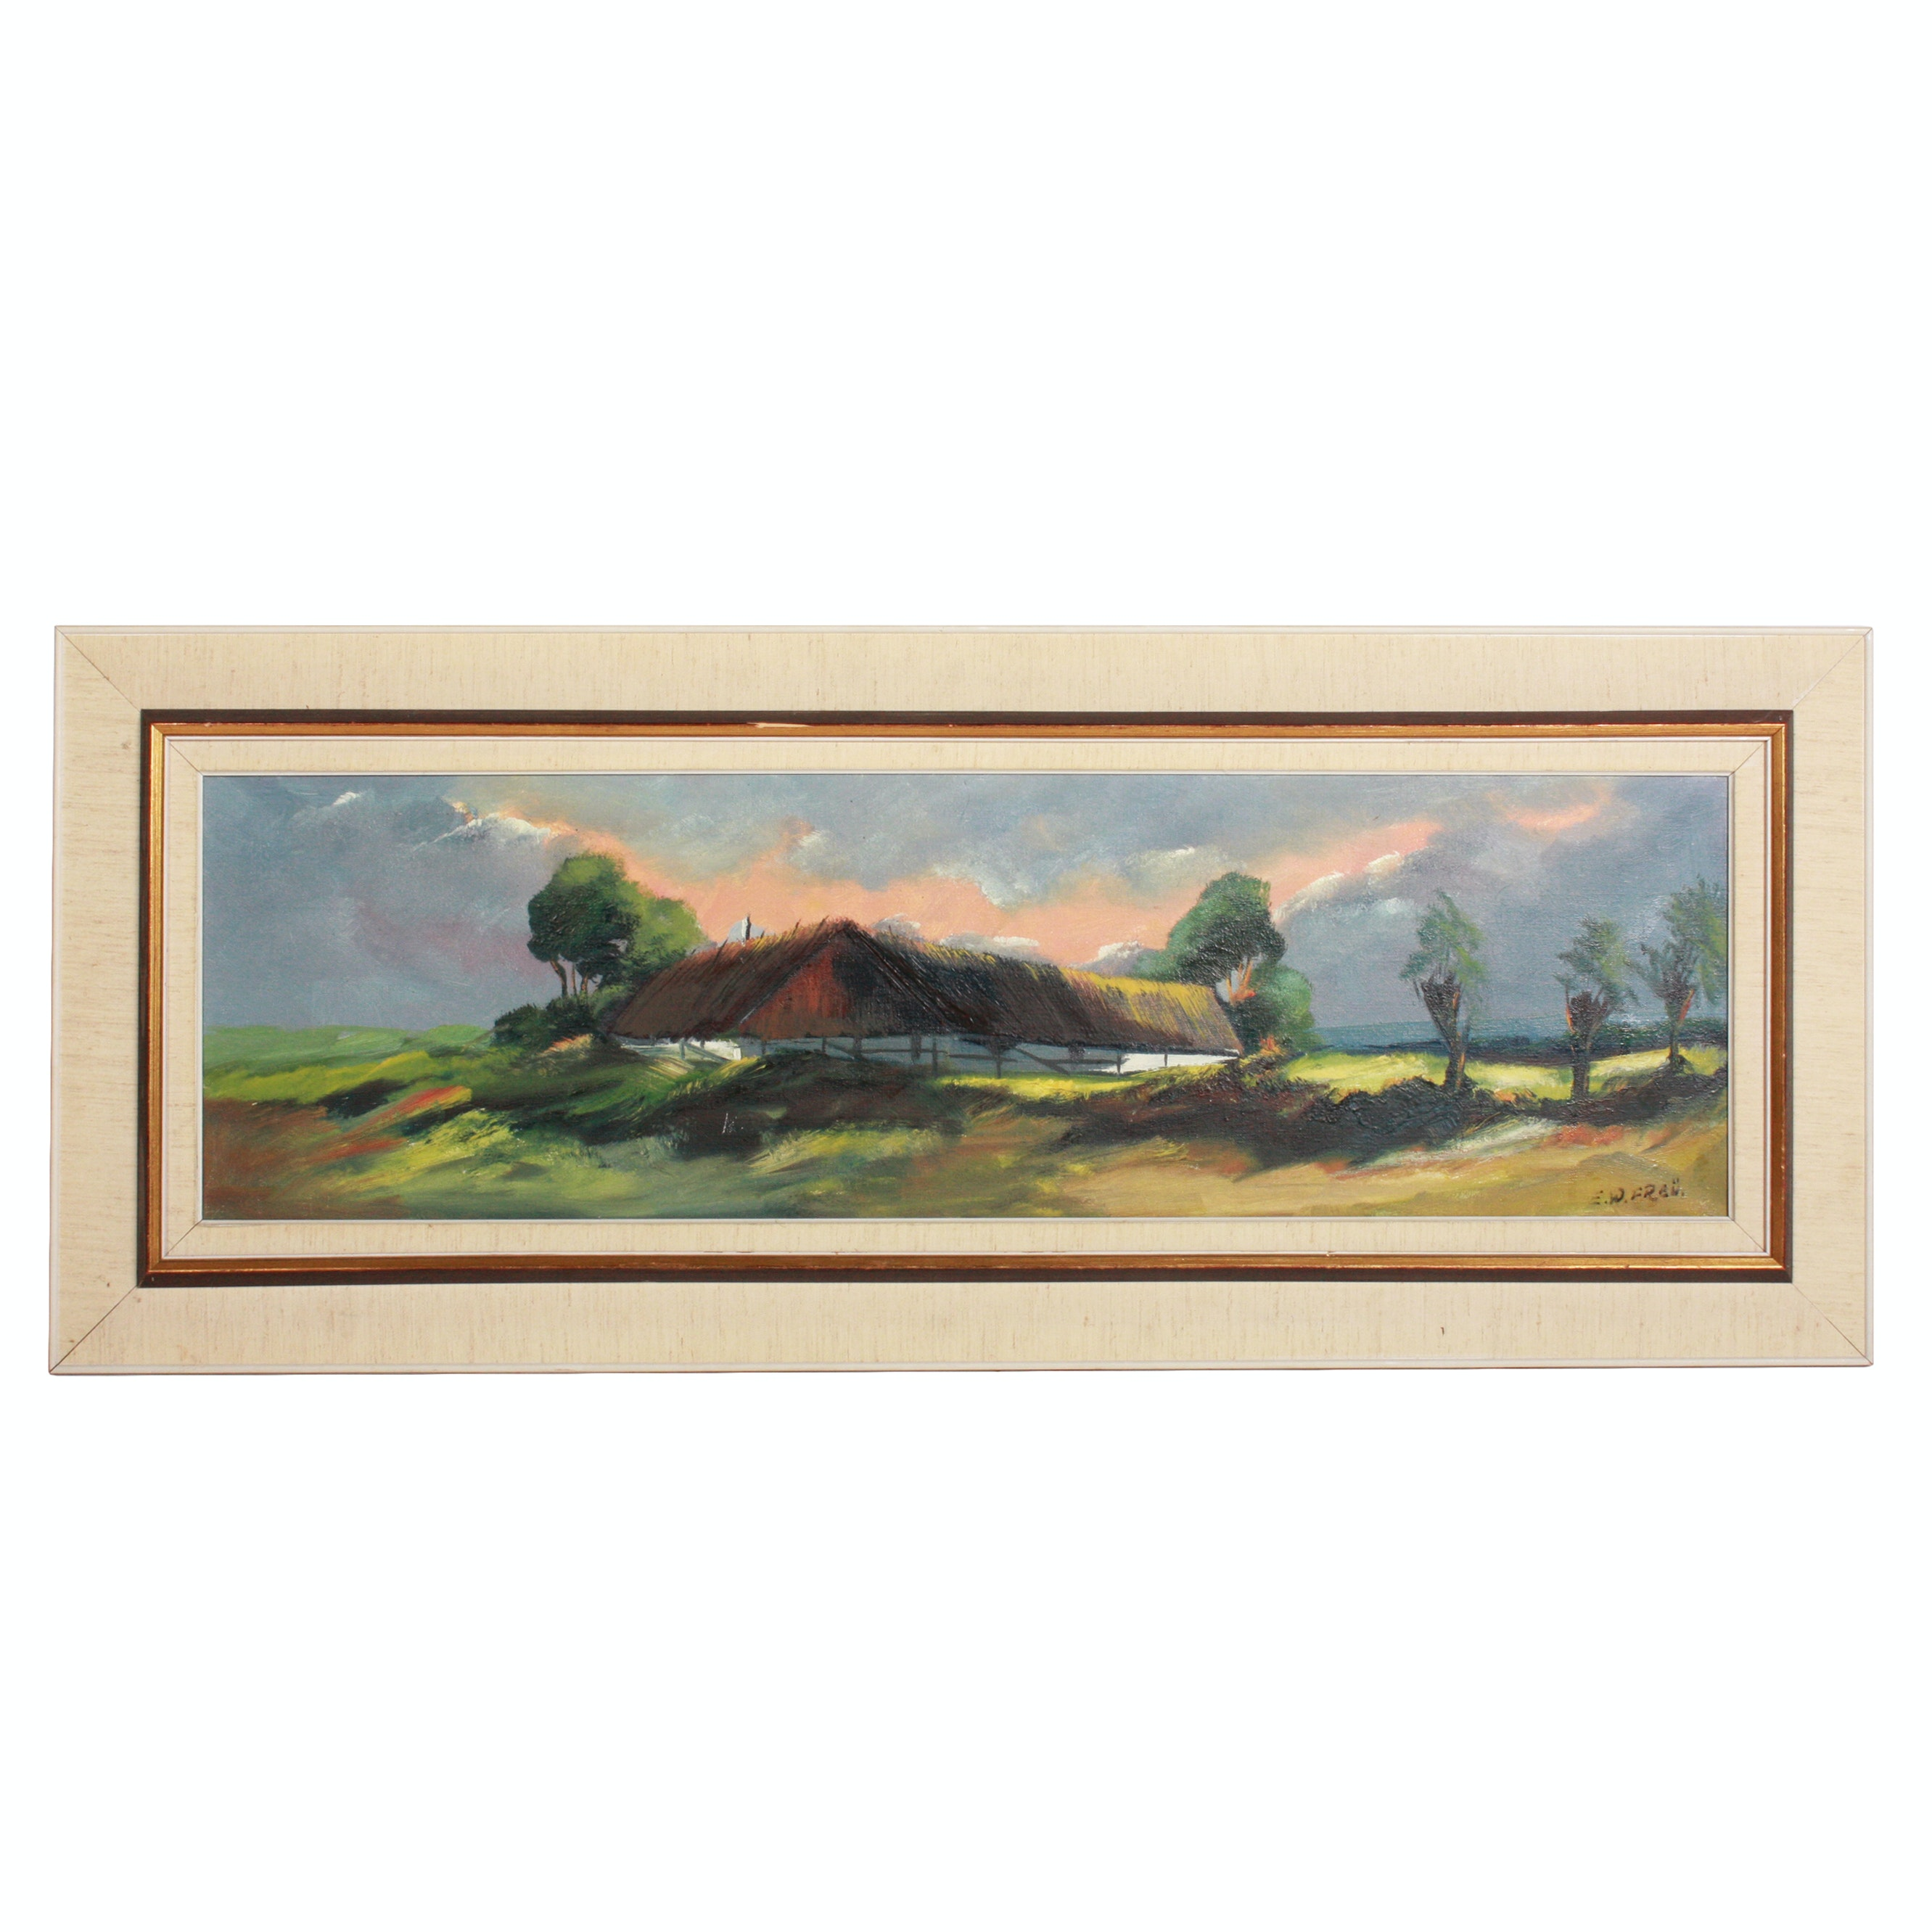 E.W. Freü Oil Painting of a Landscape